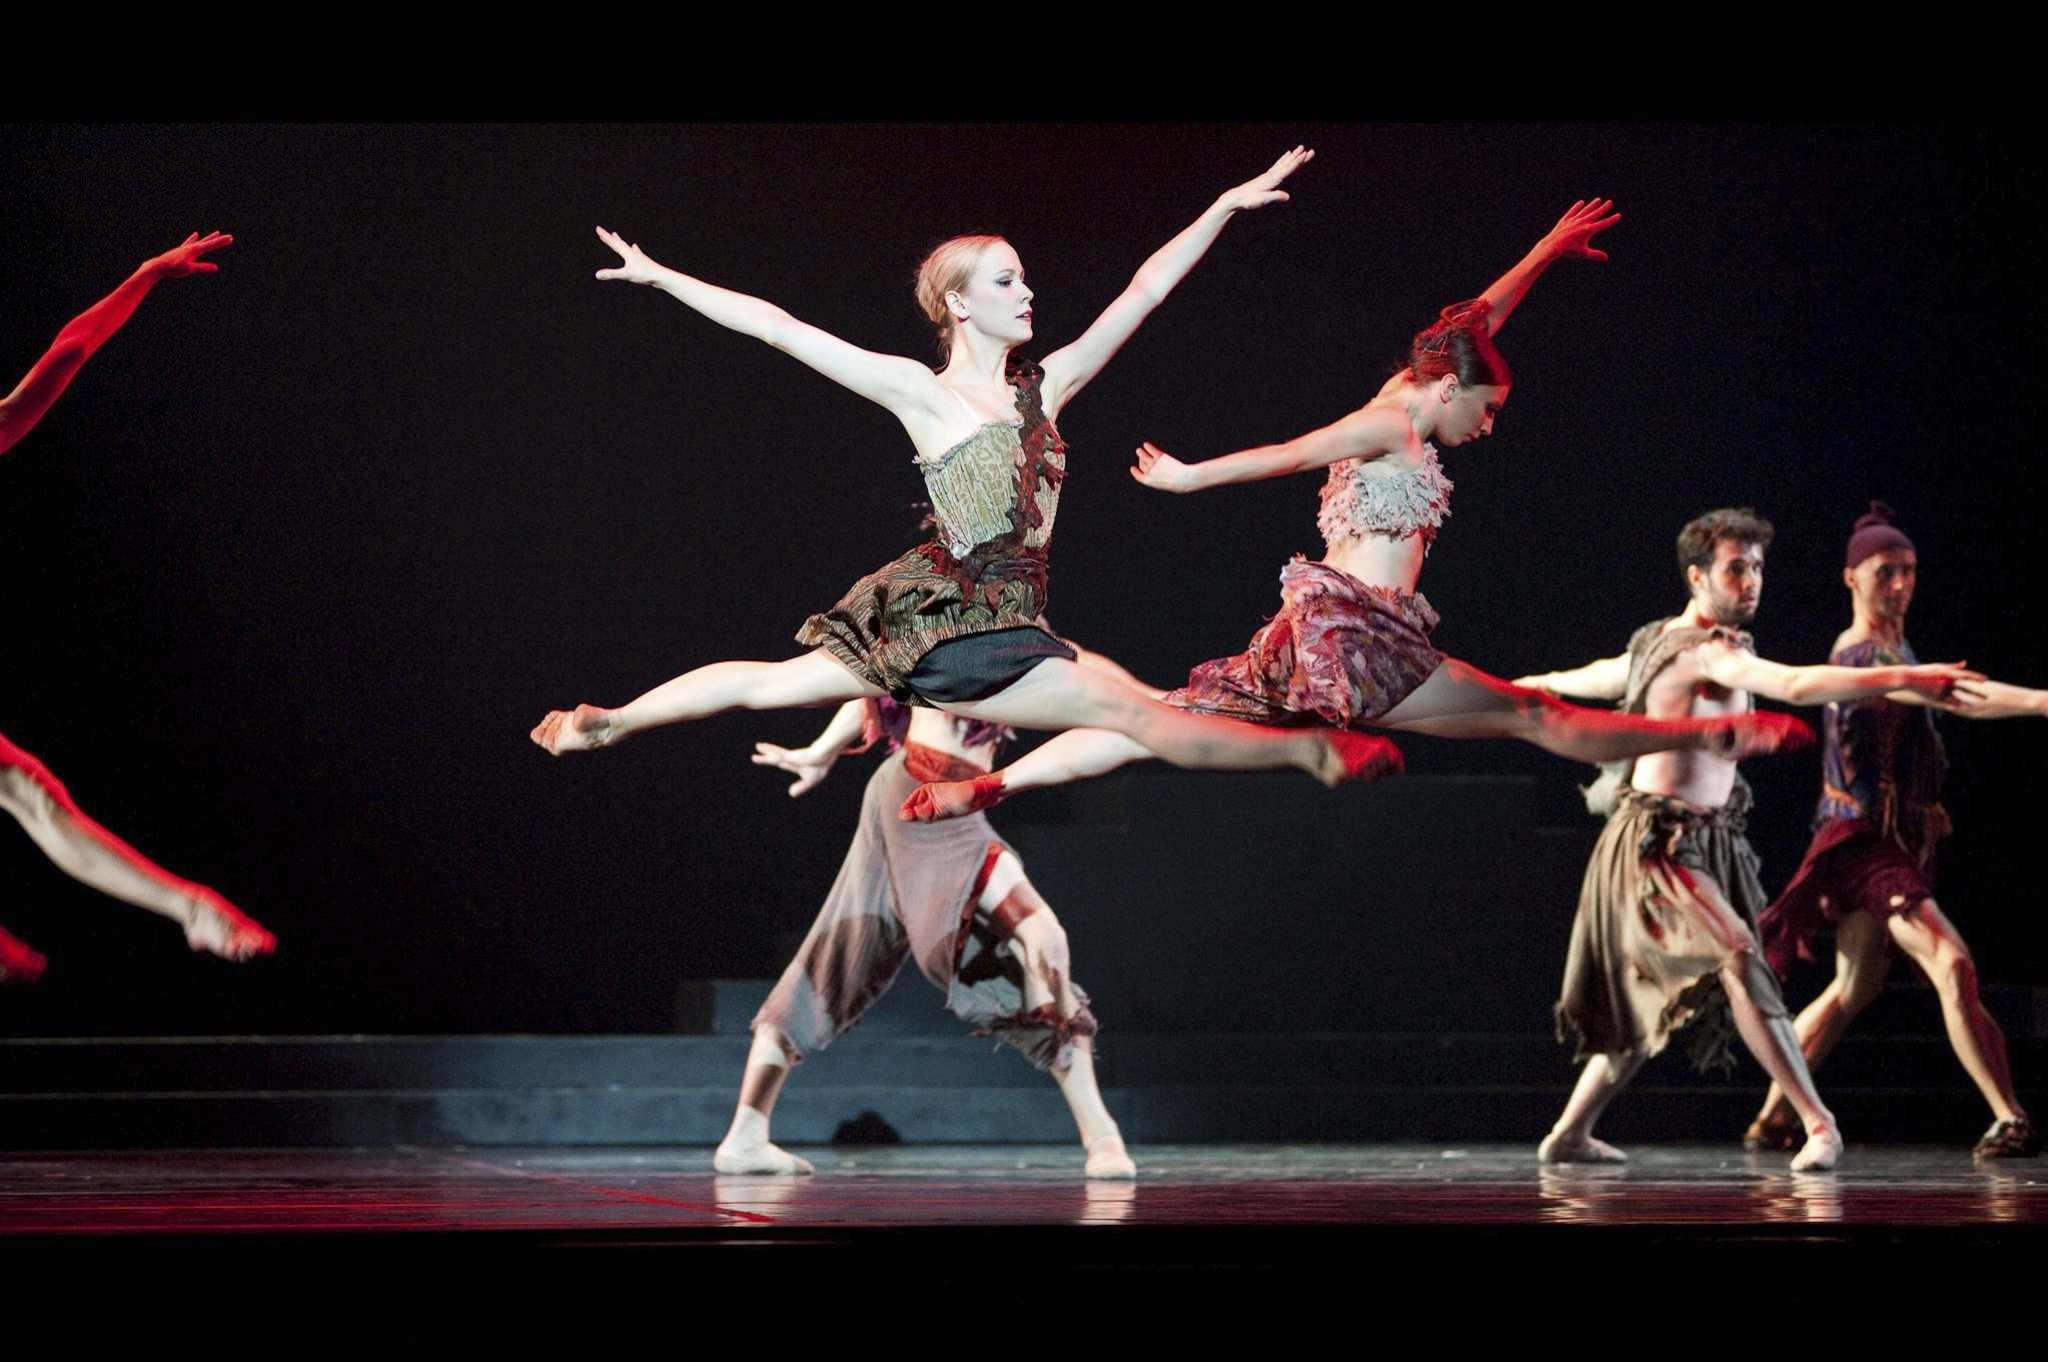 Scenes from the RWB's 2012 production of Twyla Tharp's The Princess and the Goblin.